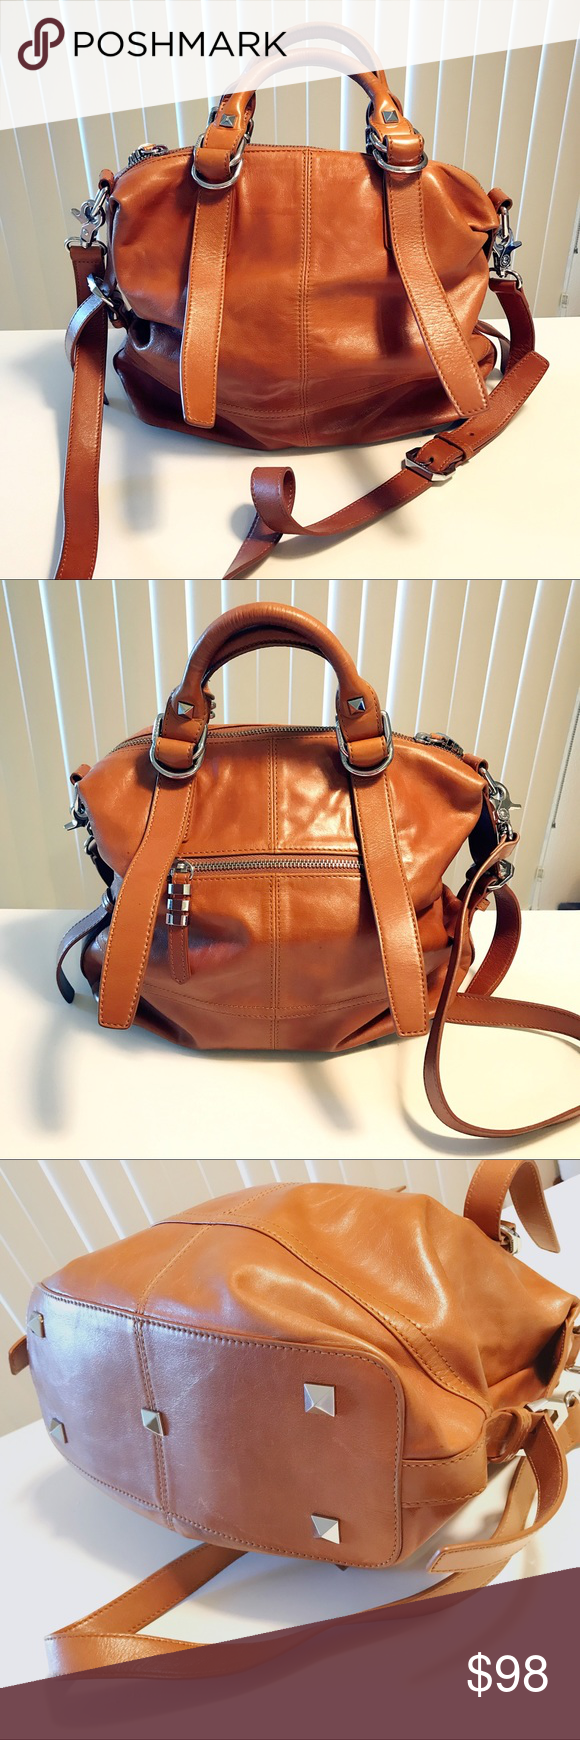 La pagayo Leather Satchel (Brown) Ideal for your daily commute, this satchel is designed to be slung over your shoulder with an adjustable shoulder strap. The top zip closure ensures all your everyday necessities stay in place, no matter how bumpy the road gets. La pagayo Bags Satchels